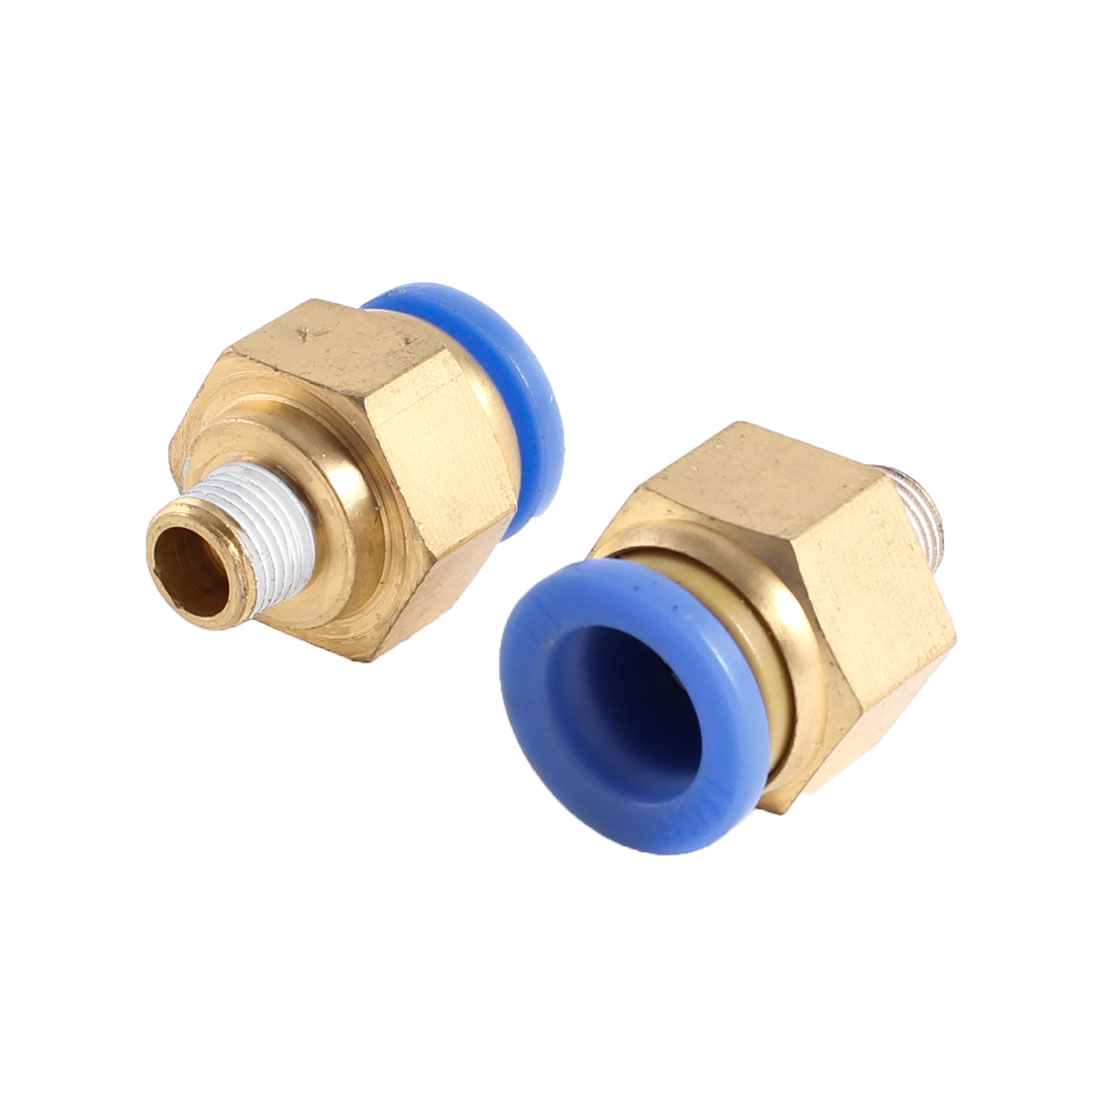 2 Pcs 10mm Male Thread to 12mm Hole Tube Air Pneumatic Push in Quick Joint